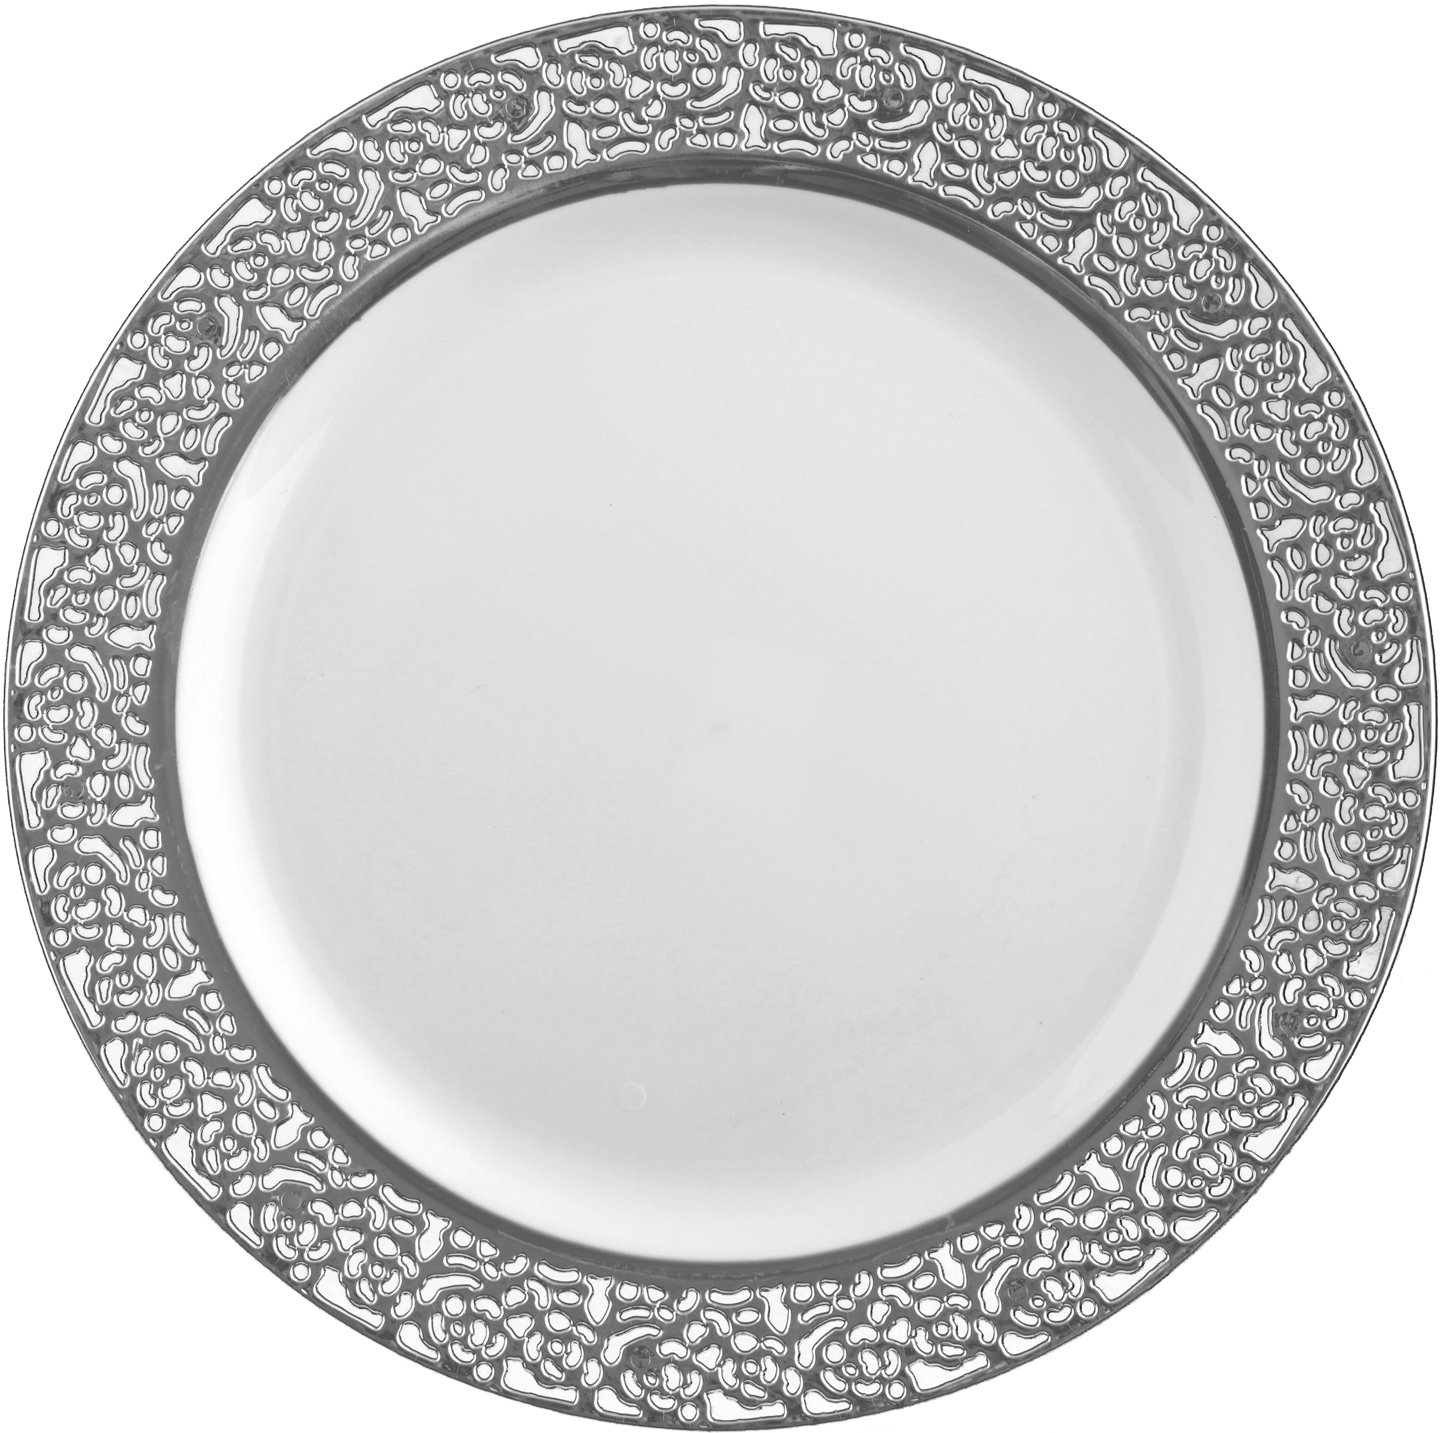 Amazon.com Inspiration White with Silver Lace Rim 7\  Heavyweight Plastic Dessert Salad Plates 10 Count Kitchen \u0026 Dining  sc 1 st  Amazon.com & Amazon.com: Inspiration White with Silver Lace Rim 7\